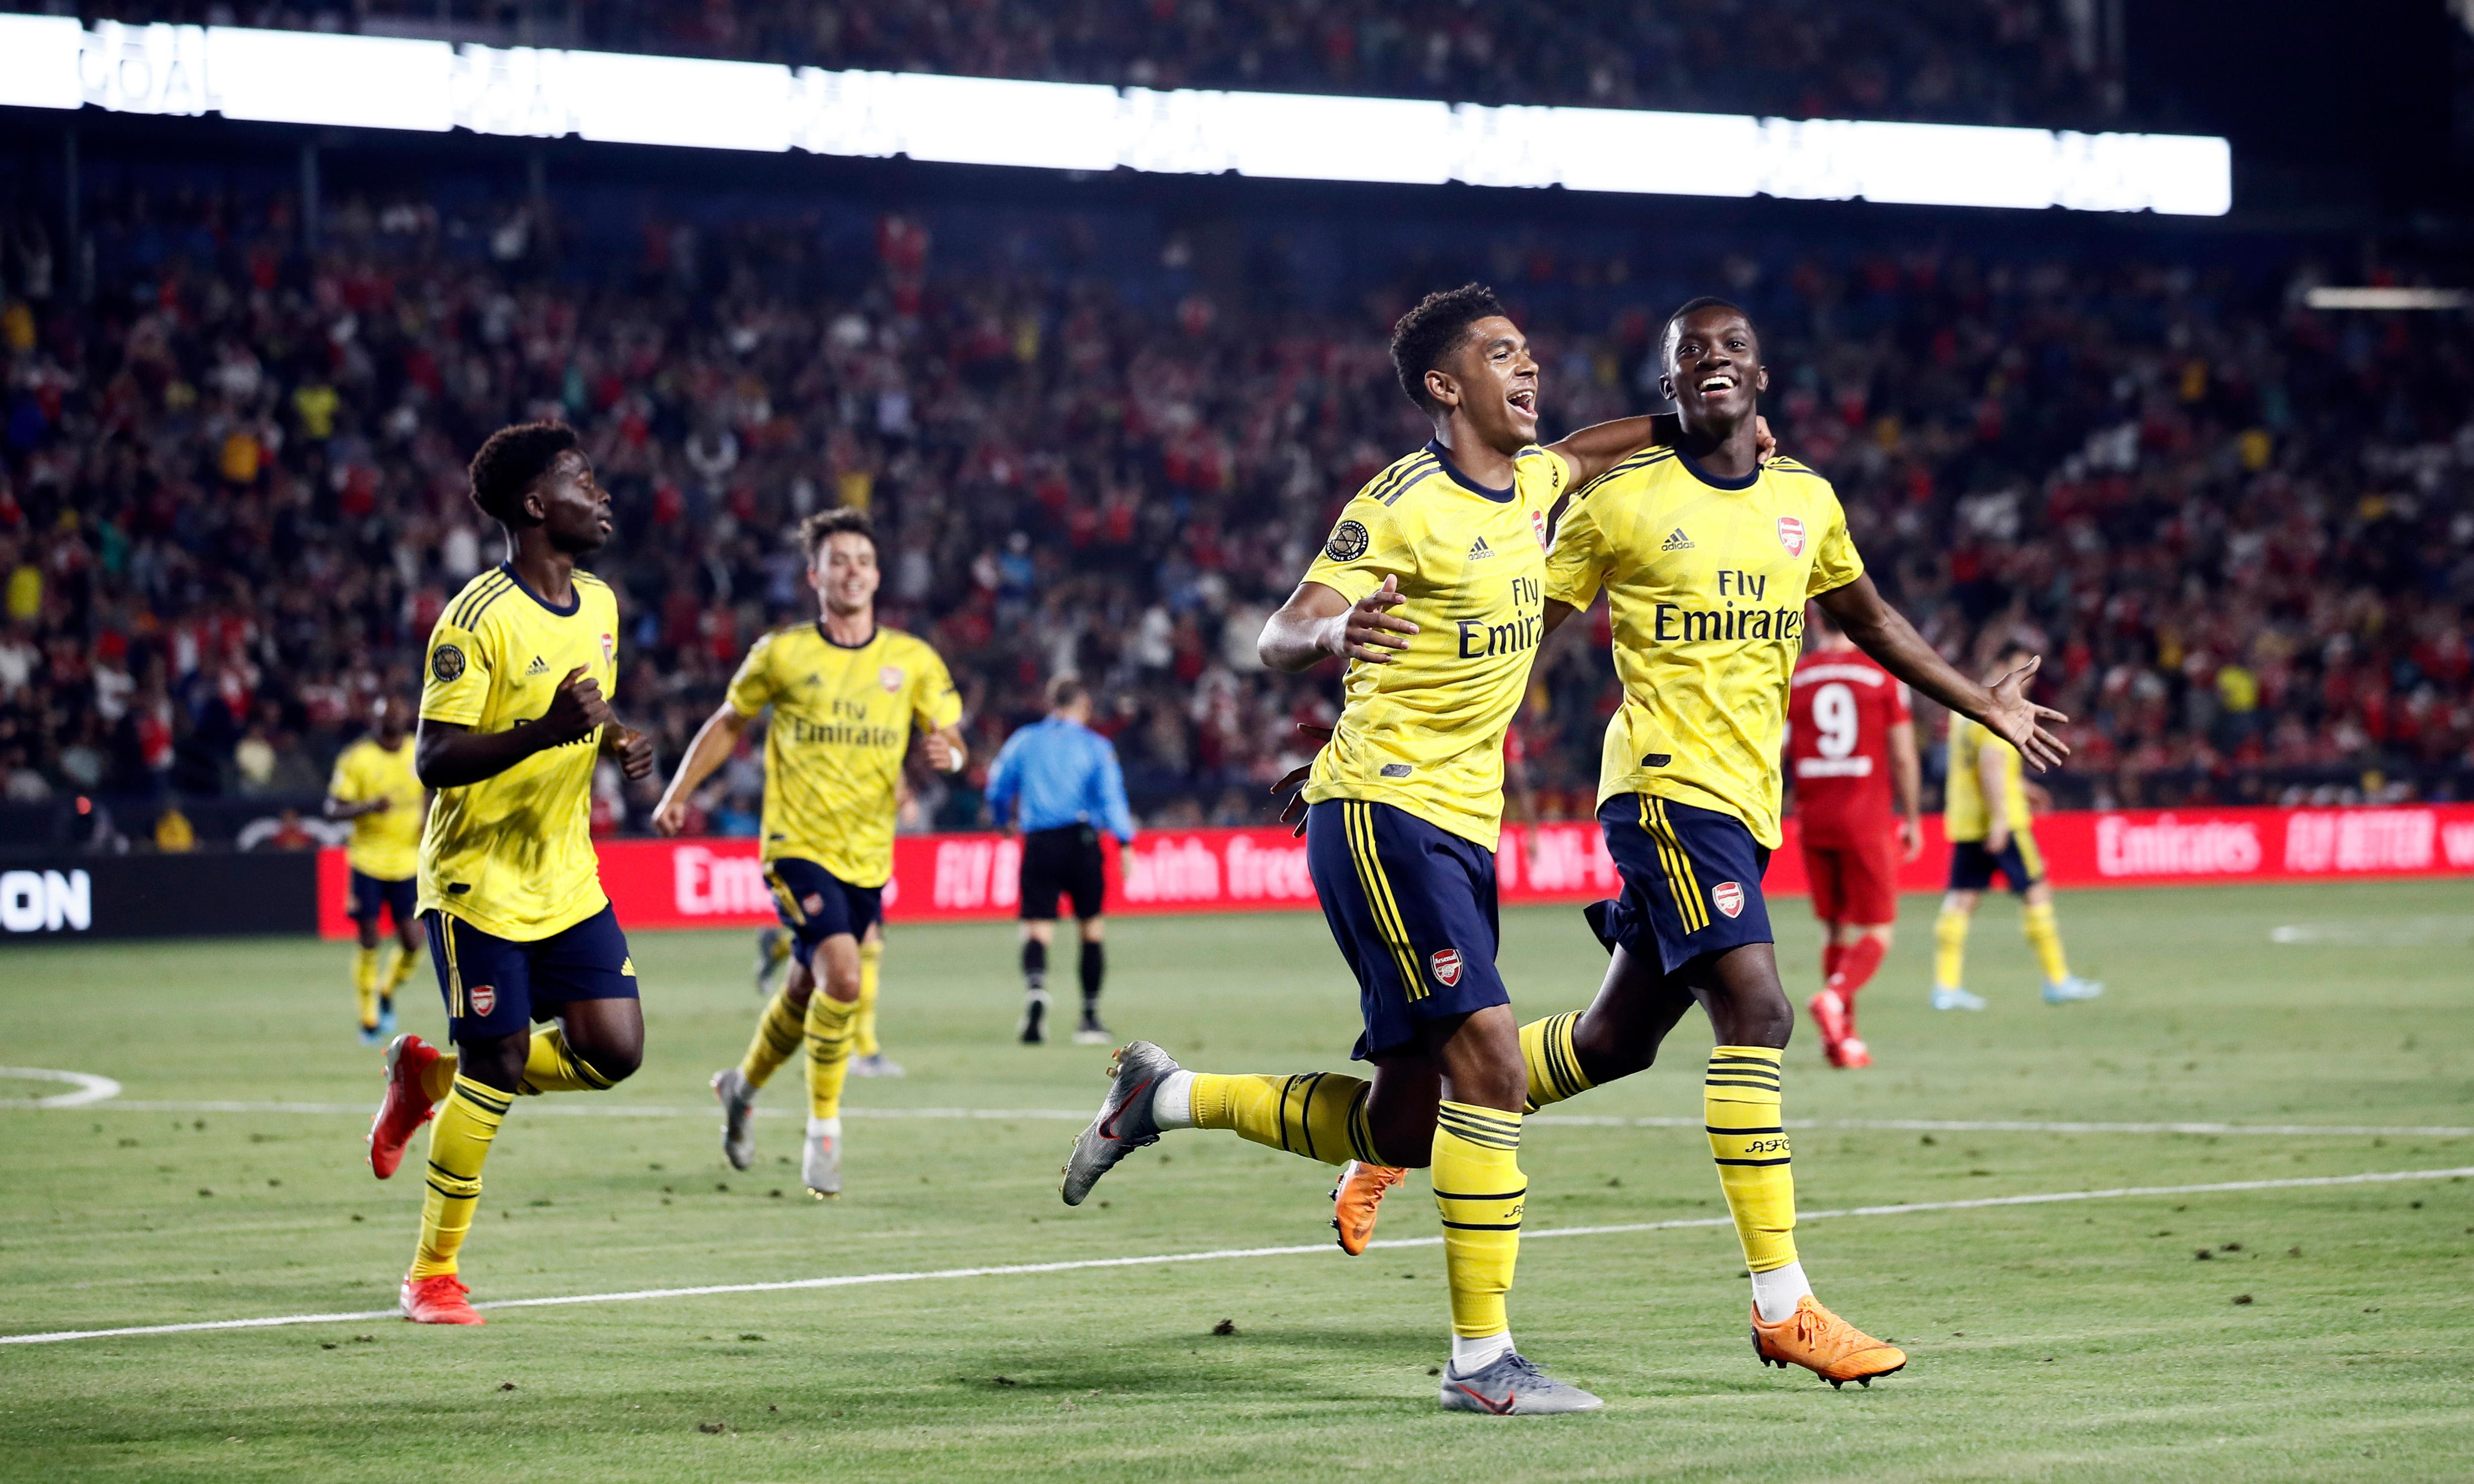 Emery excited by Arsenal youngsters after Nketiah cuts down Bayern Munich